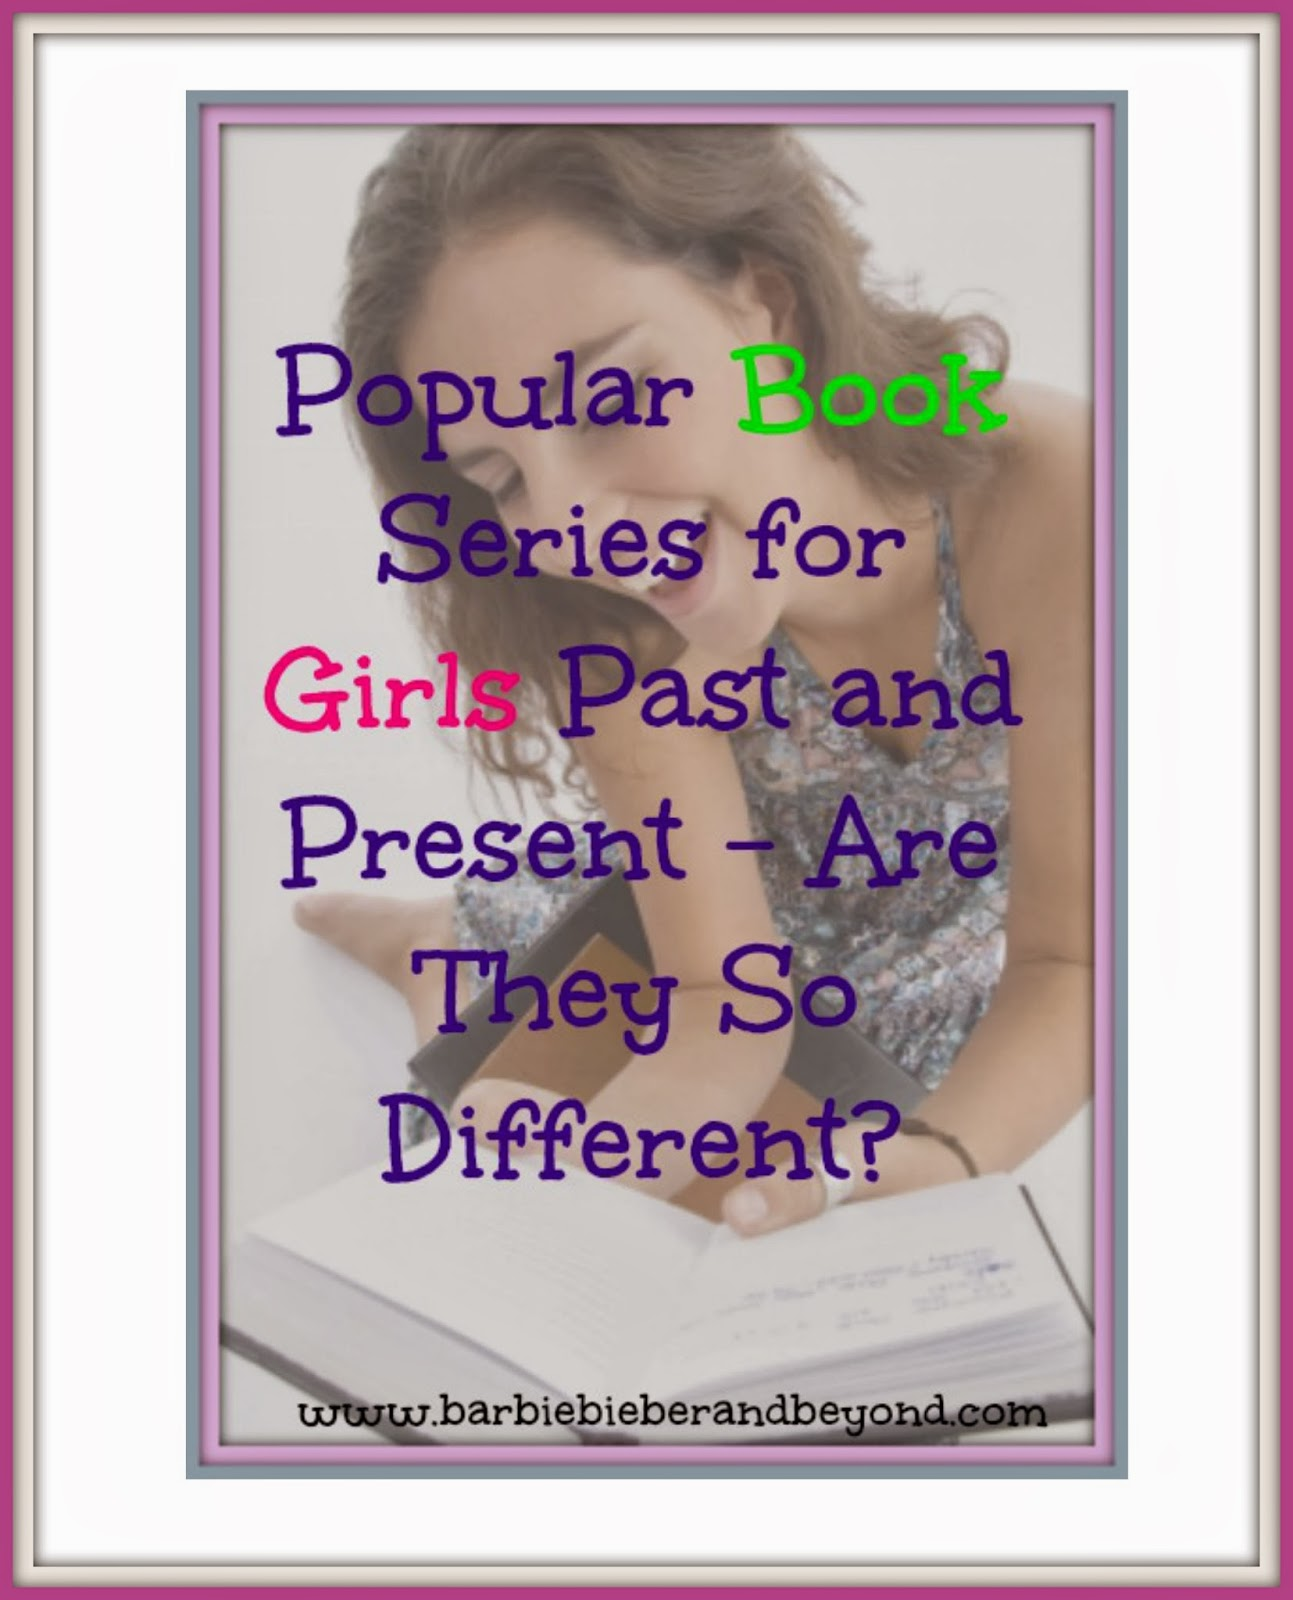 Book series for girls